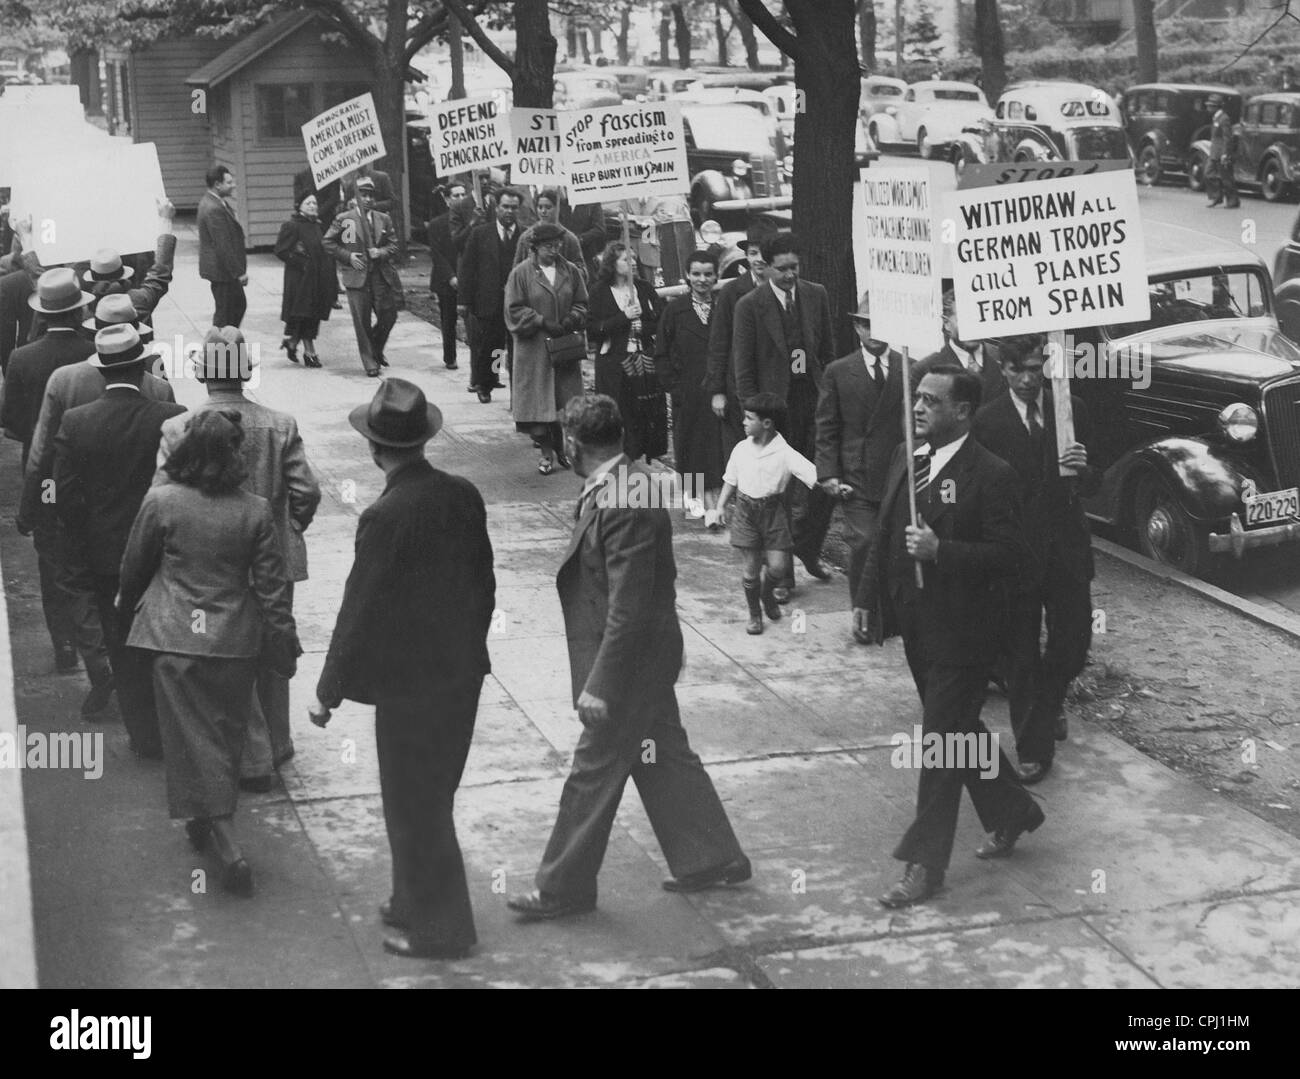 Protest in the USA against the German involvement in the Spanish Civil War, 1937 - Stock Image